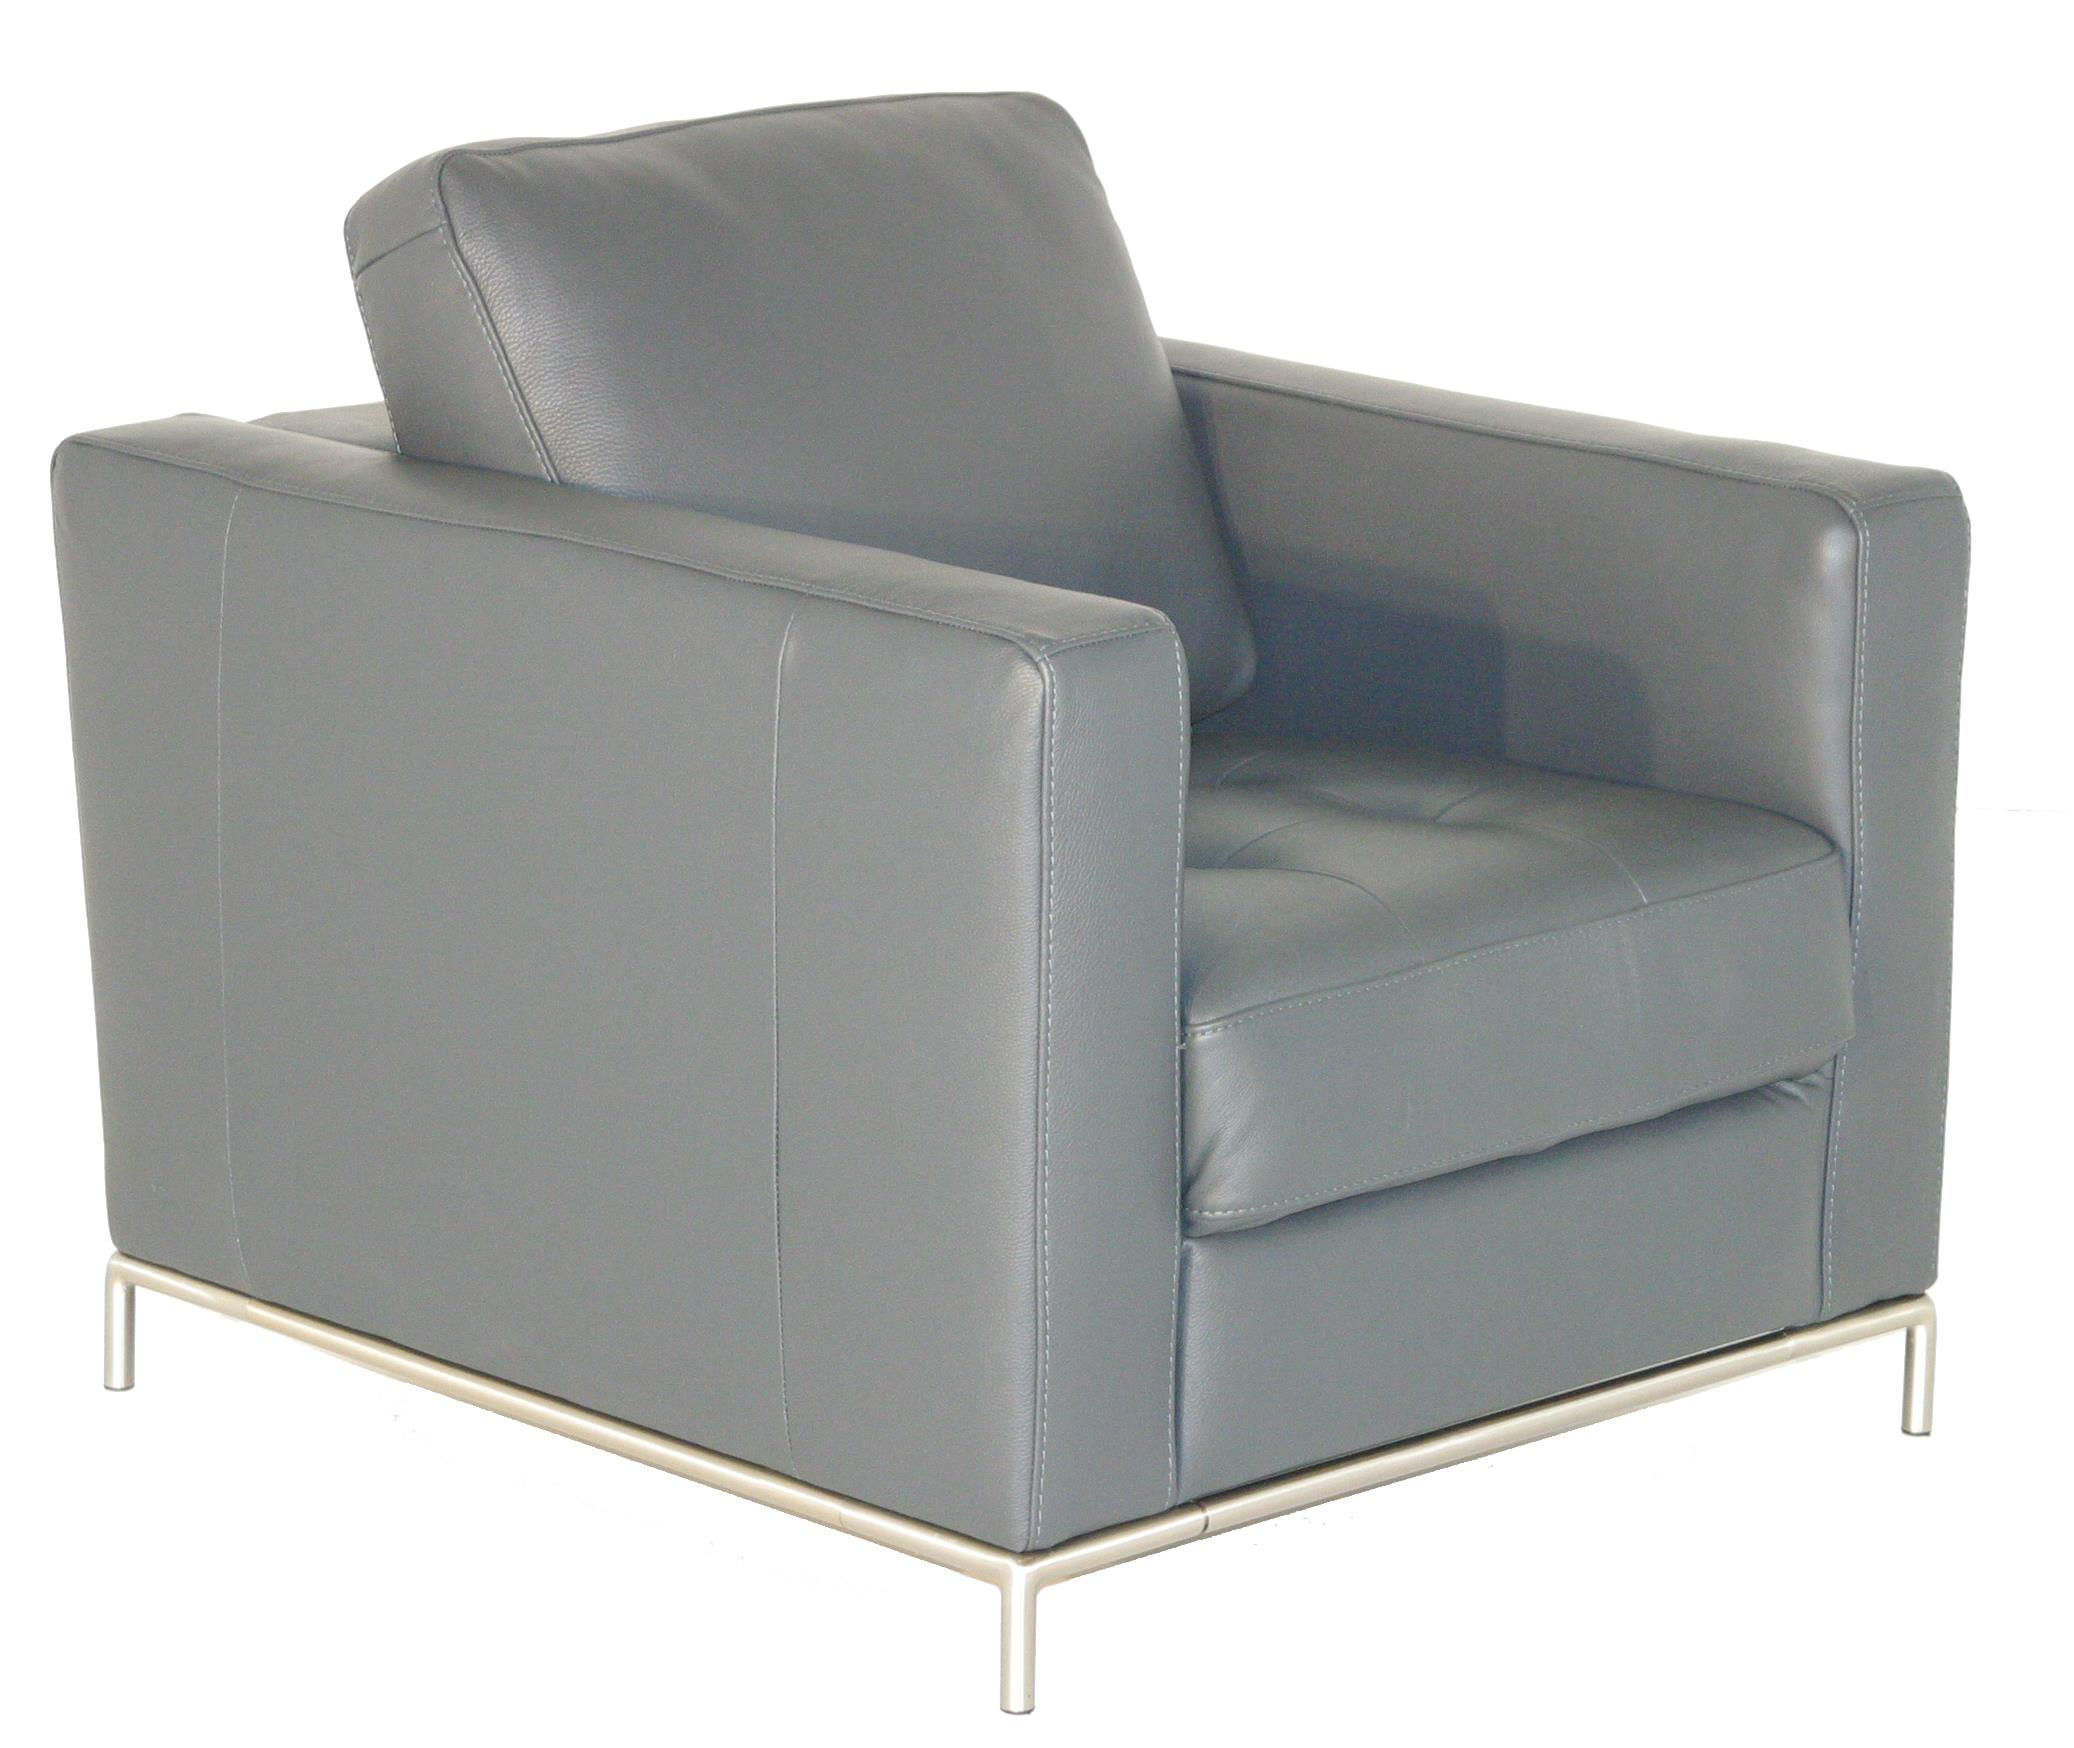 natuzzi leather sofa replacement legs stella eq3 editions b805 contemporary chair with button